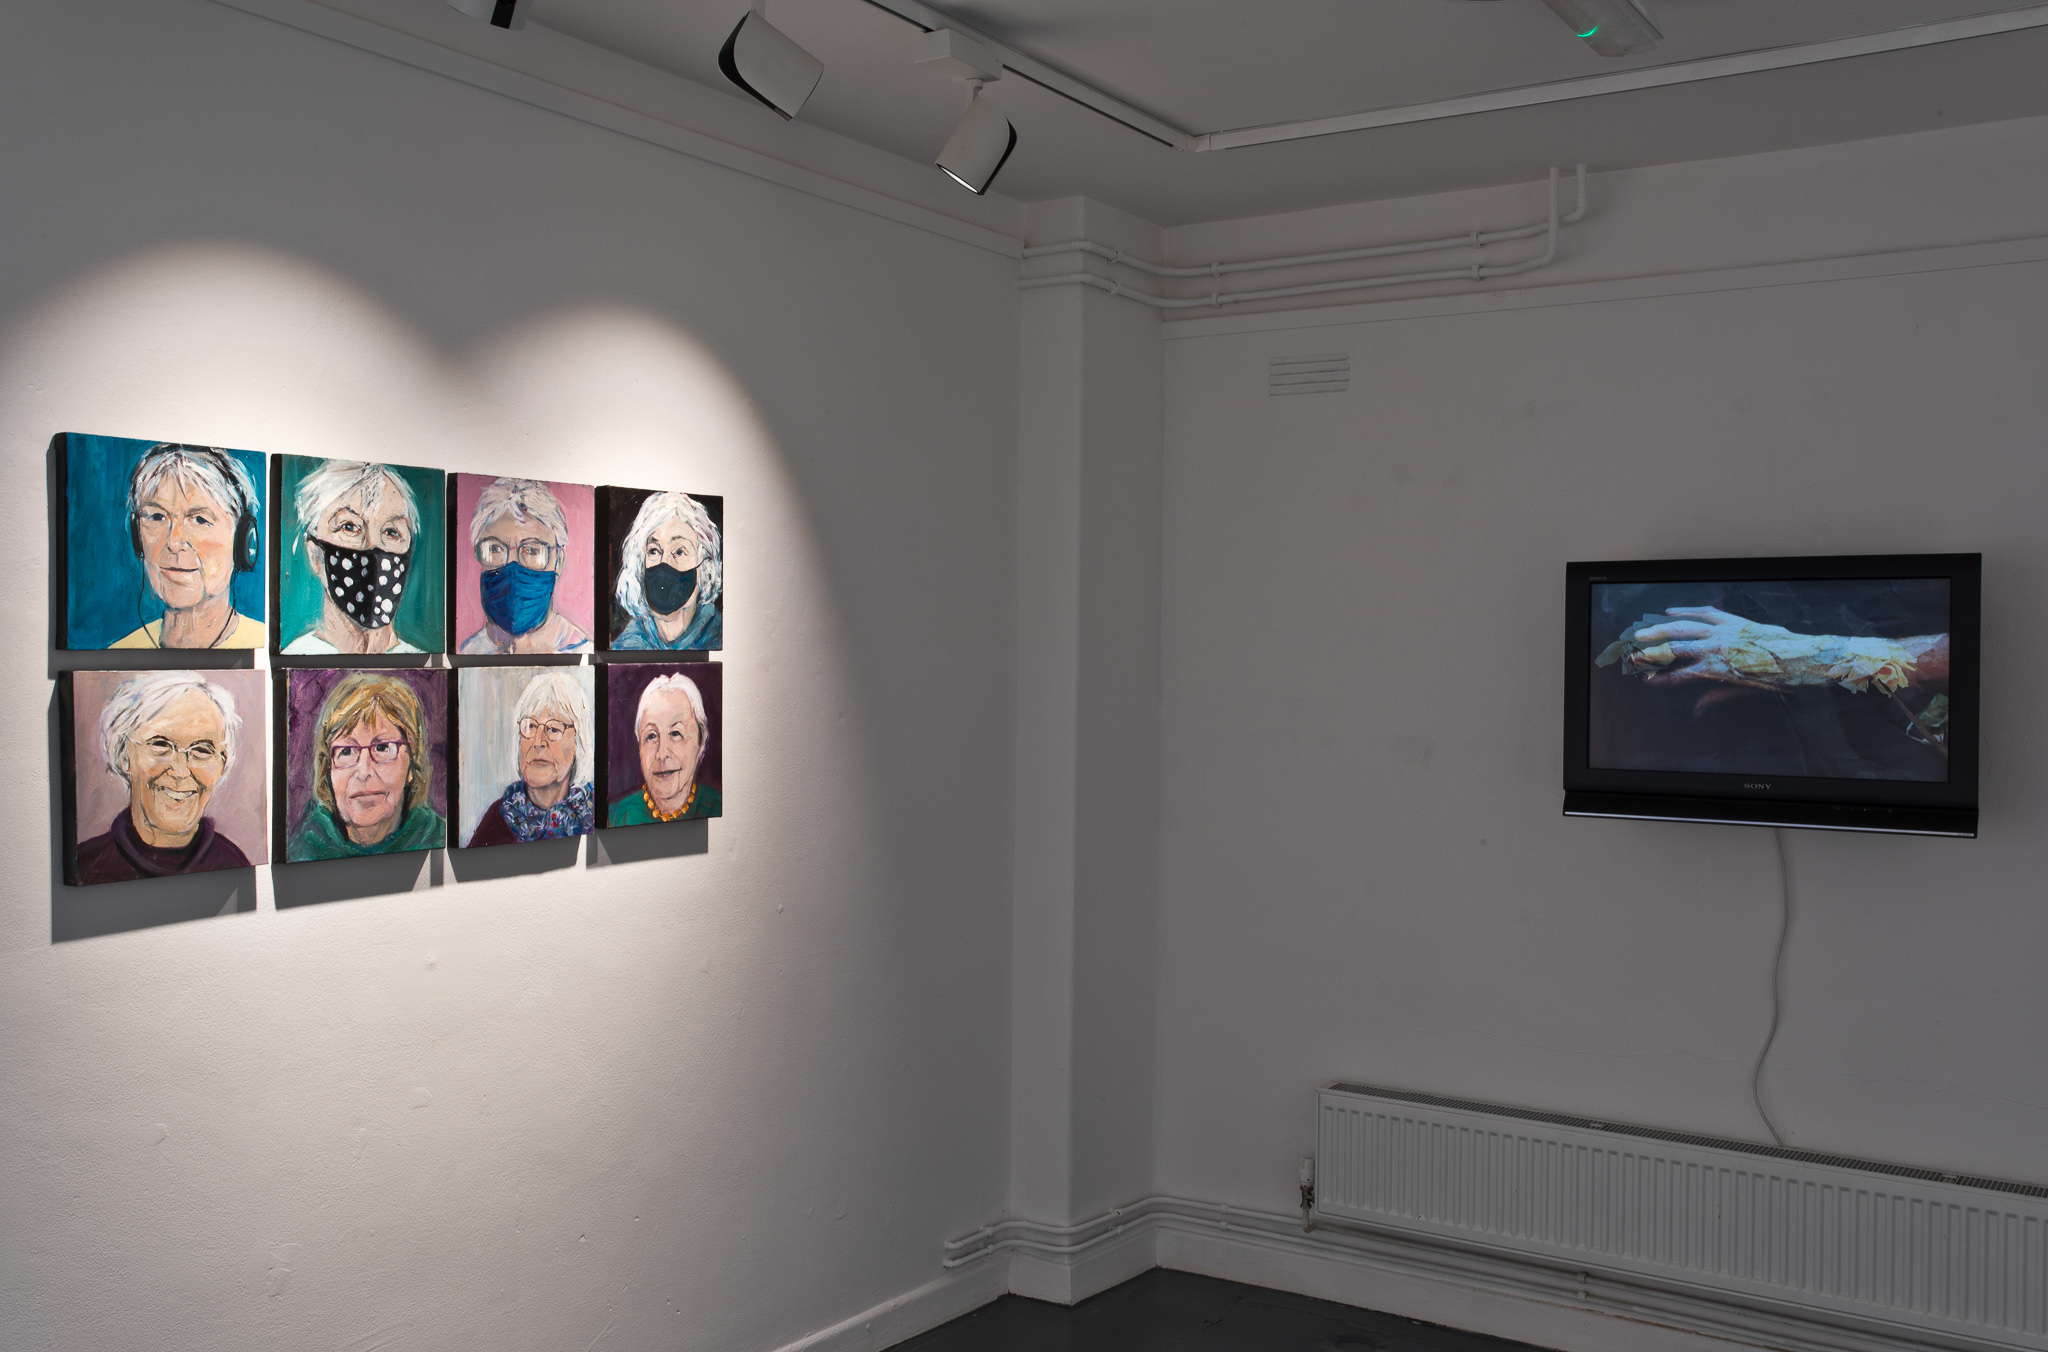 Installation view - Na Cailleacha - portraits by Patricia Hurl / On the Monitor - Barbara Freeman, Seven Voices, Video Artwork - 25 mins - Na Cailleacha, Stone Sounding, 2020, collective video performance, directed by Carole Nelson & Therry Rudin